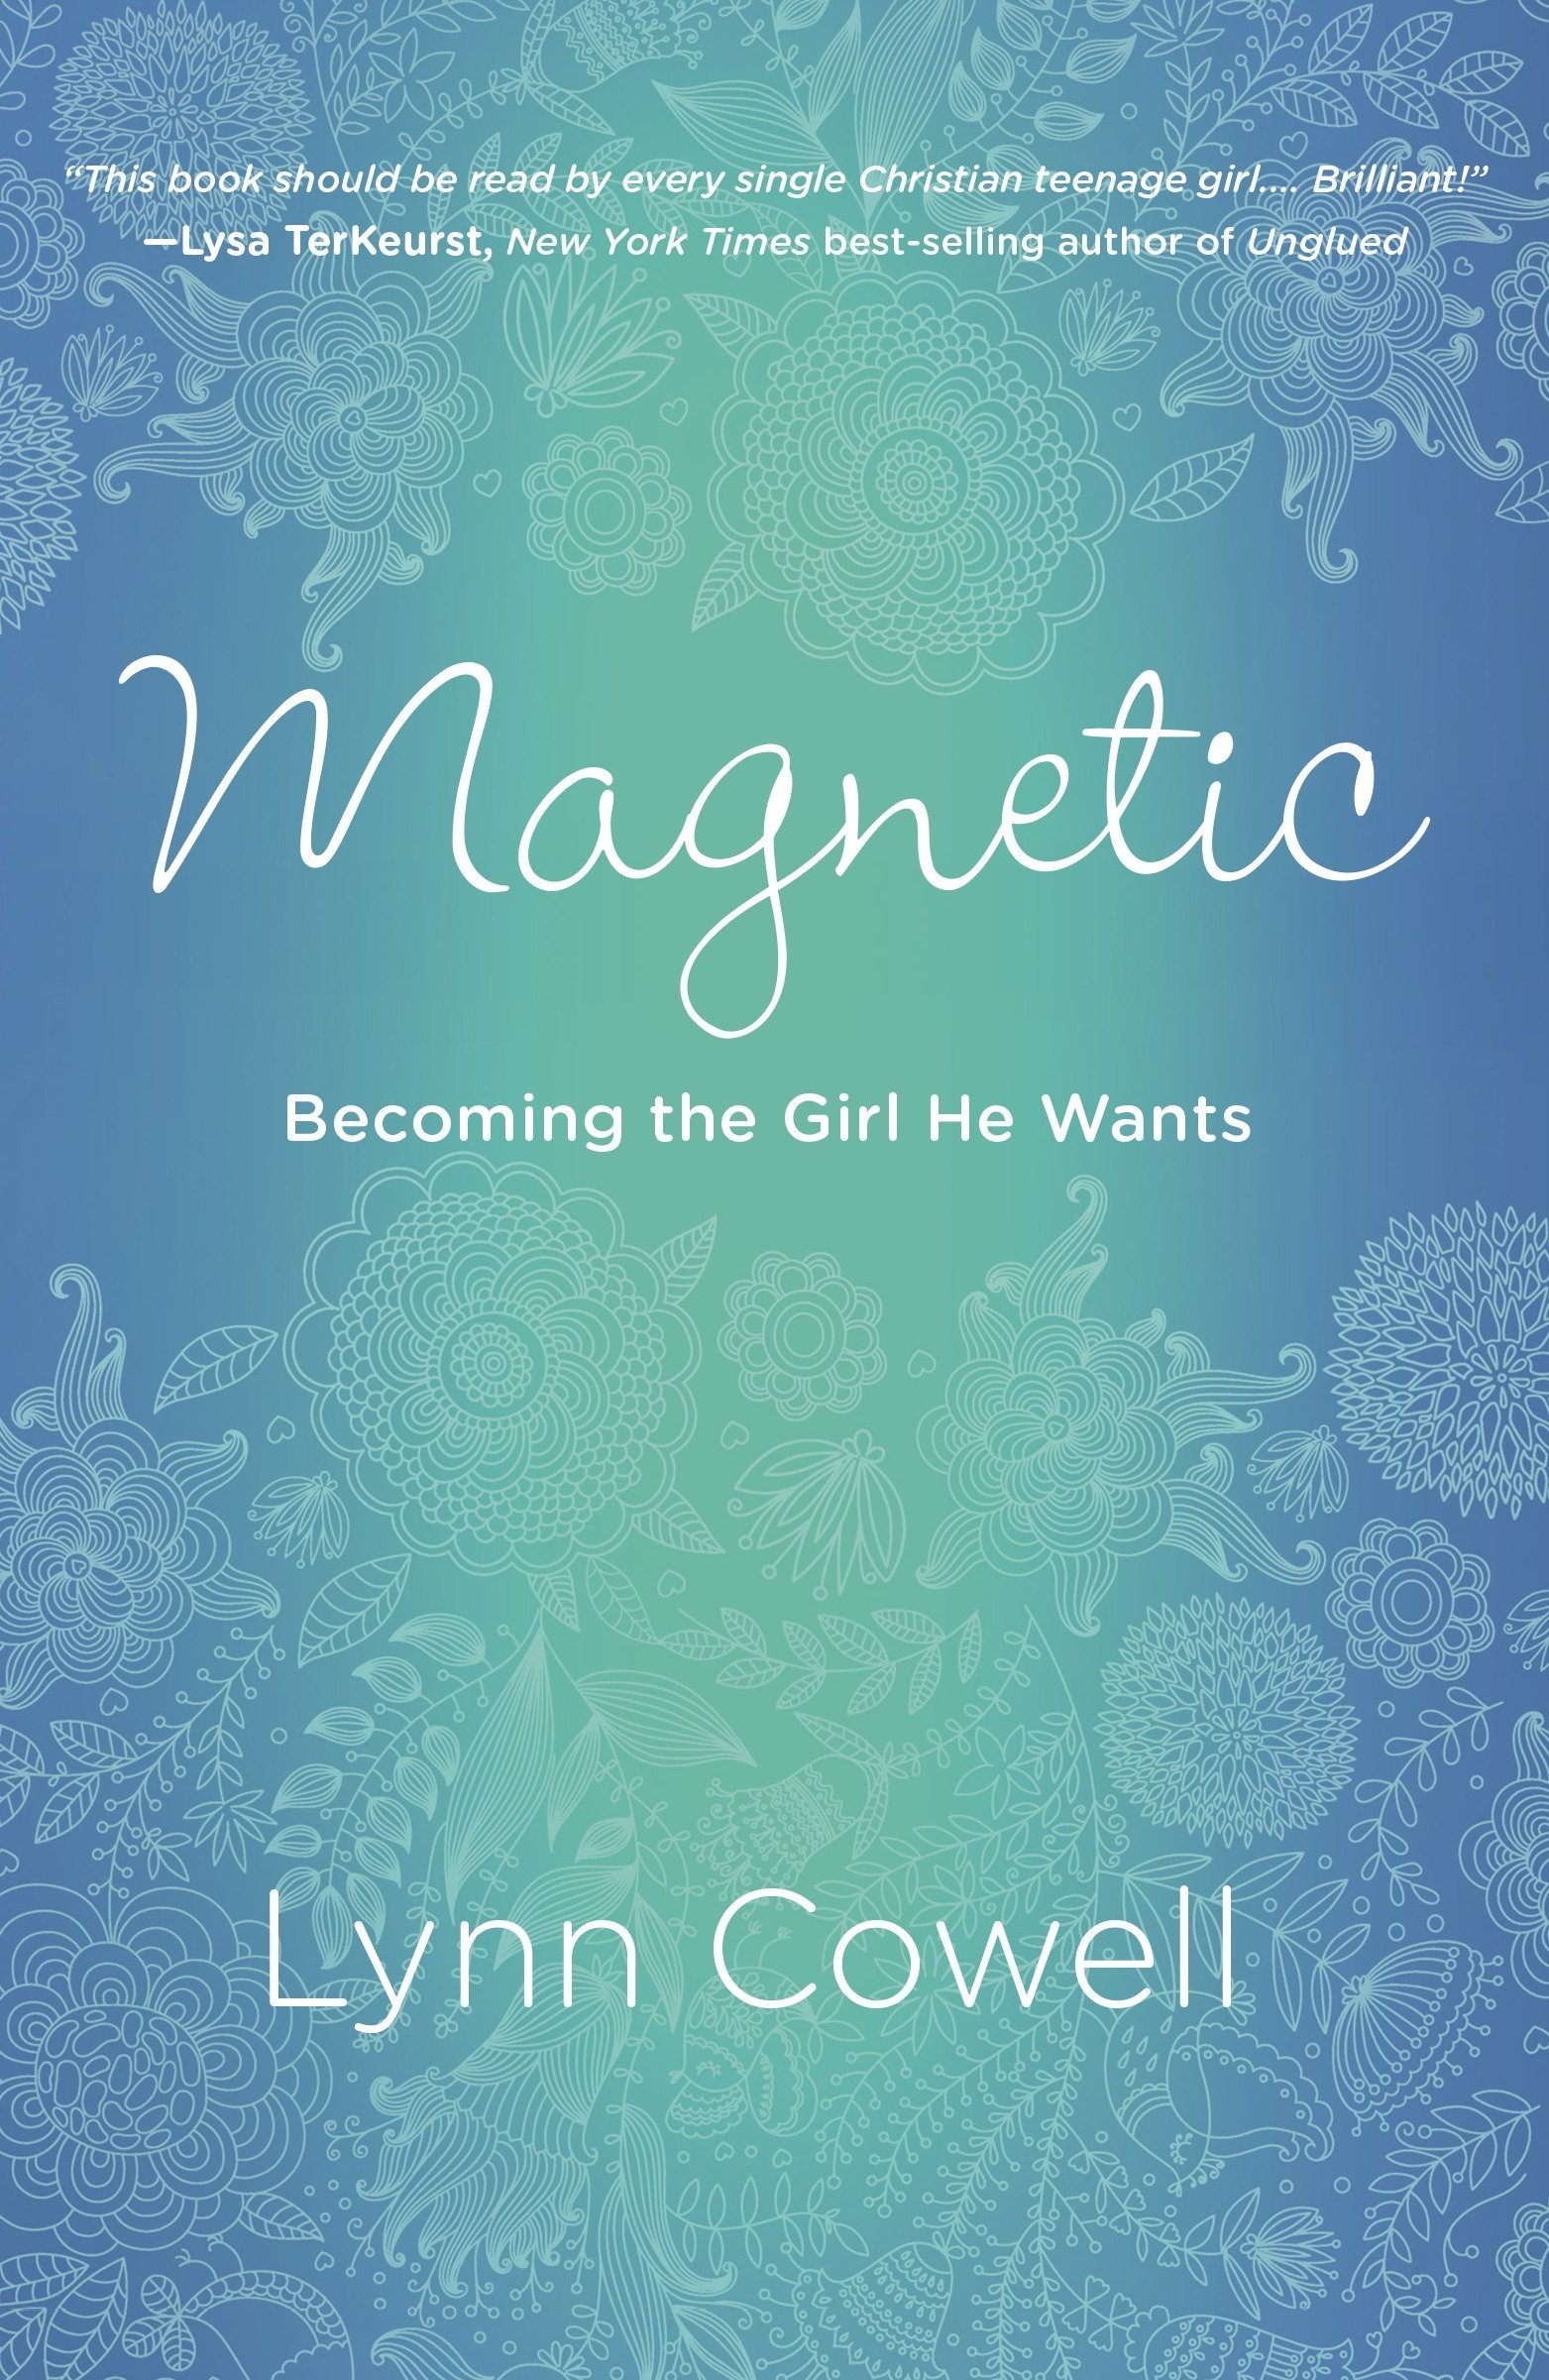 Amazon.com: Magnetic: Becoming the Girl He Wants (9781601425805): Lynn  Cowell: Books